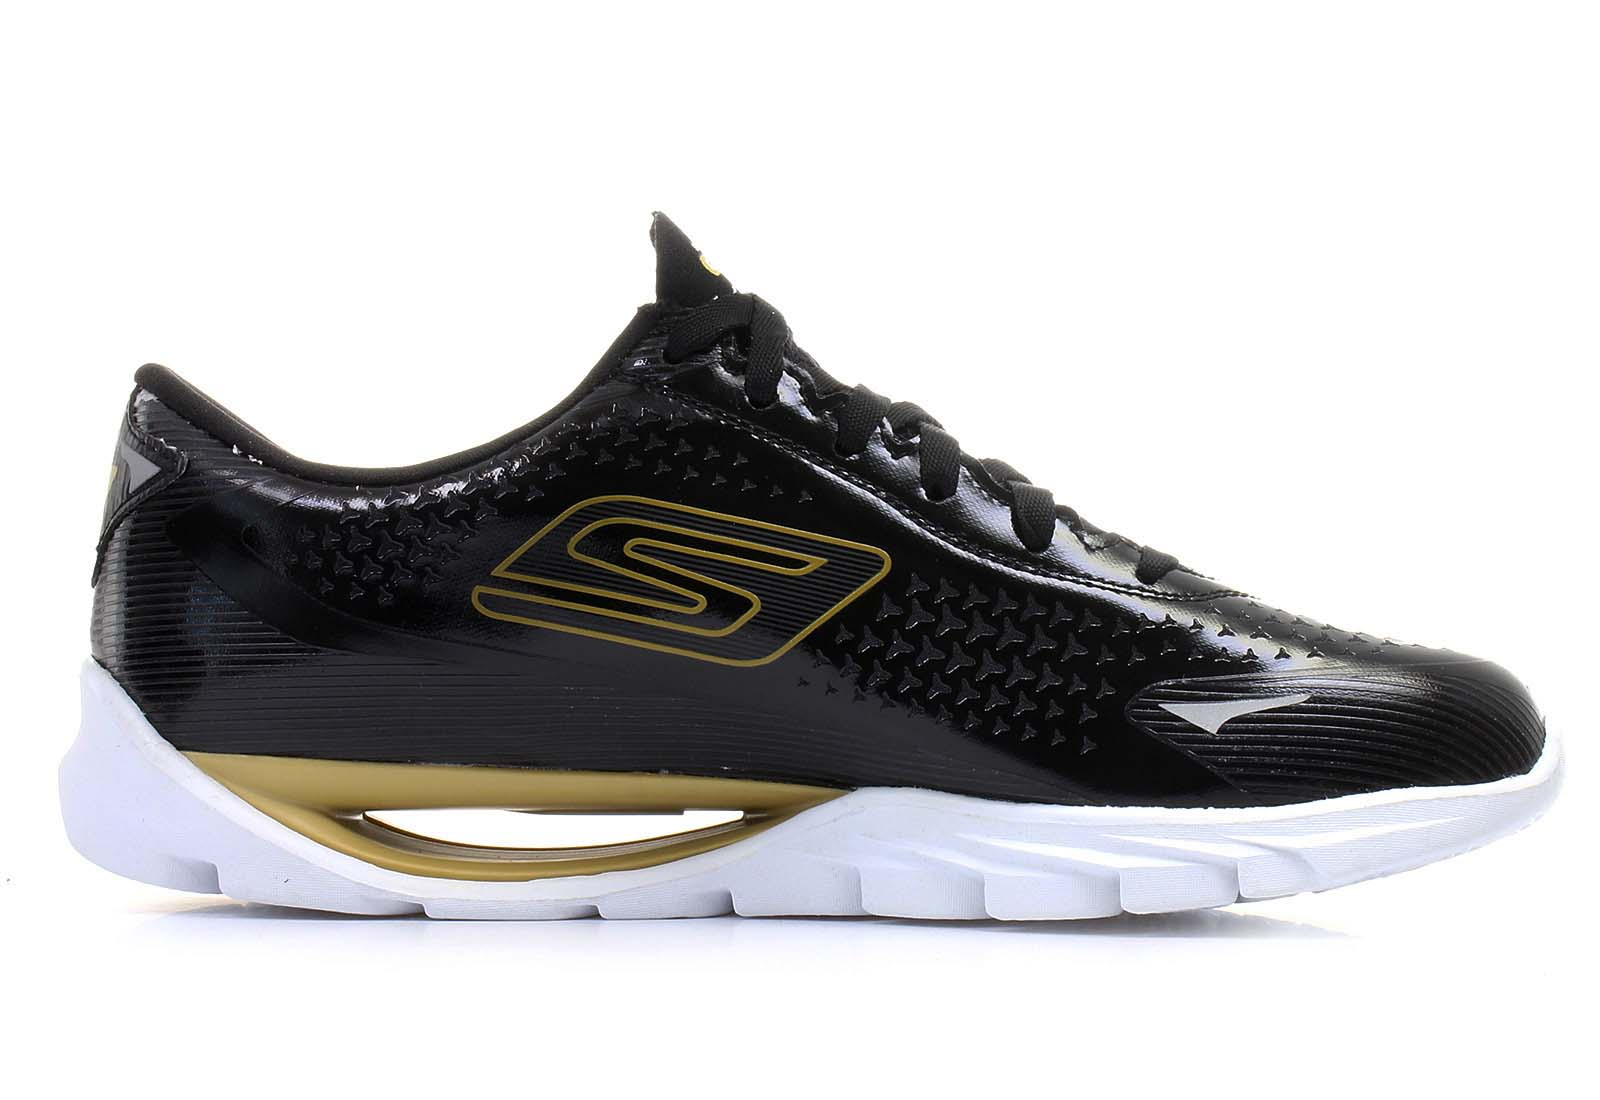 Skechers Men's Go Meb KRS Running Shoes-Black/Gold-7